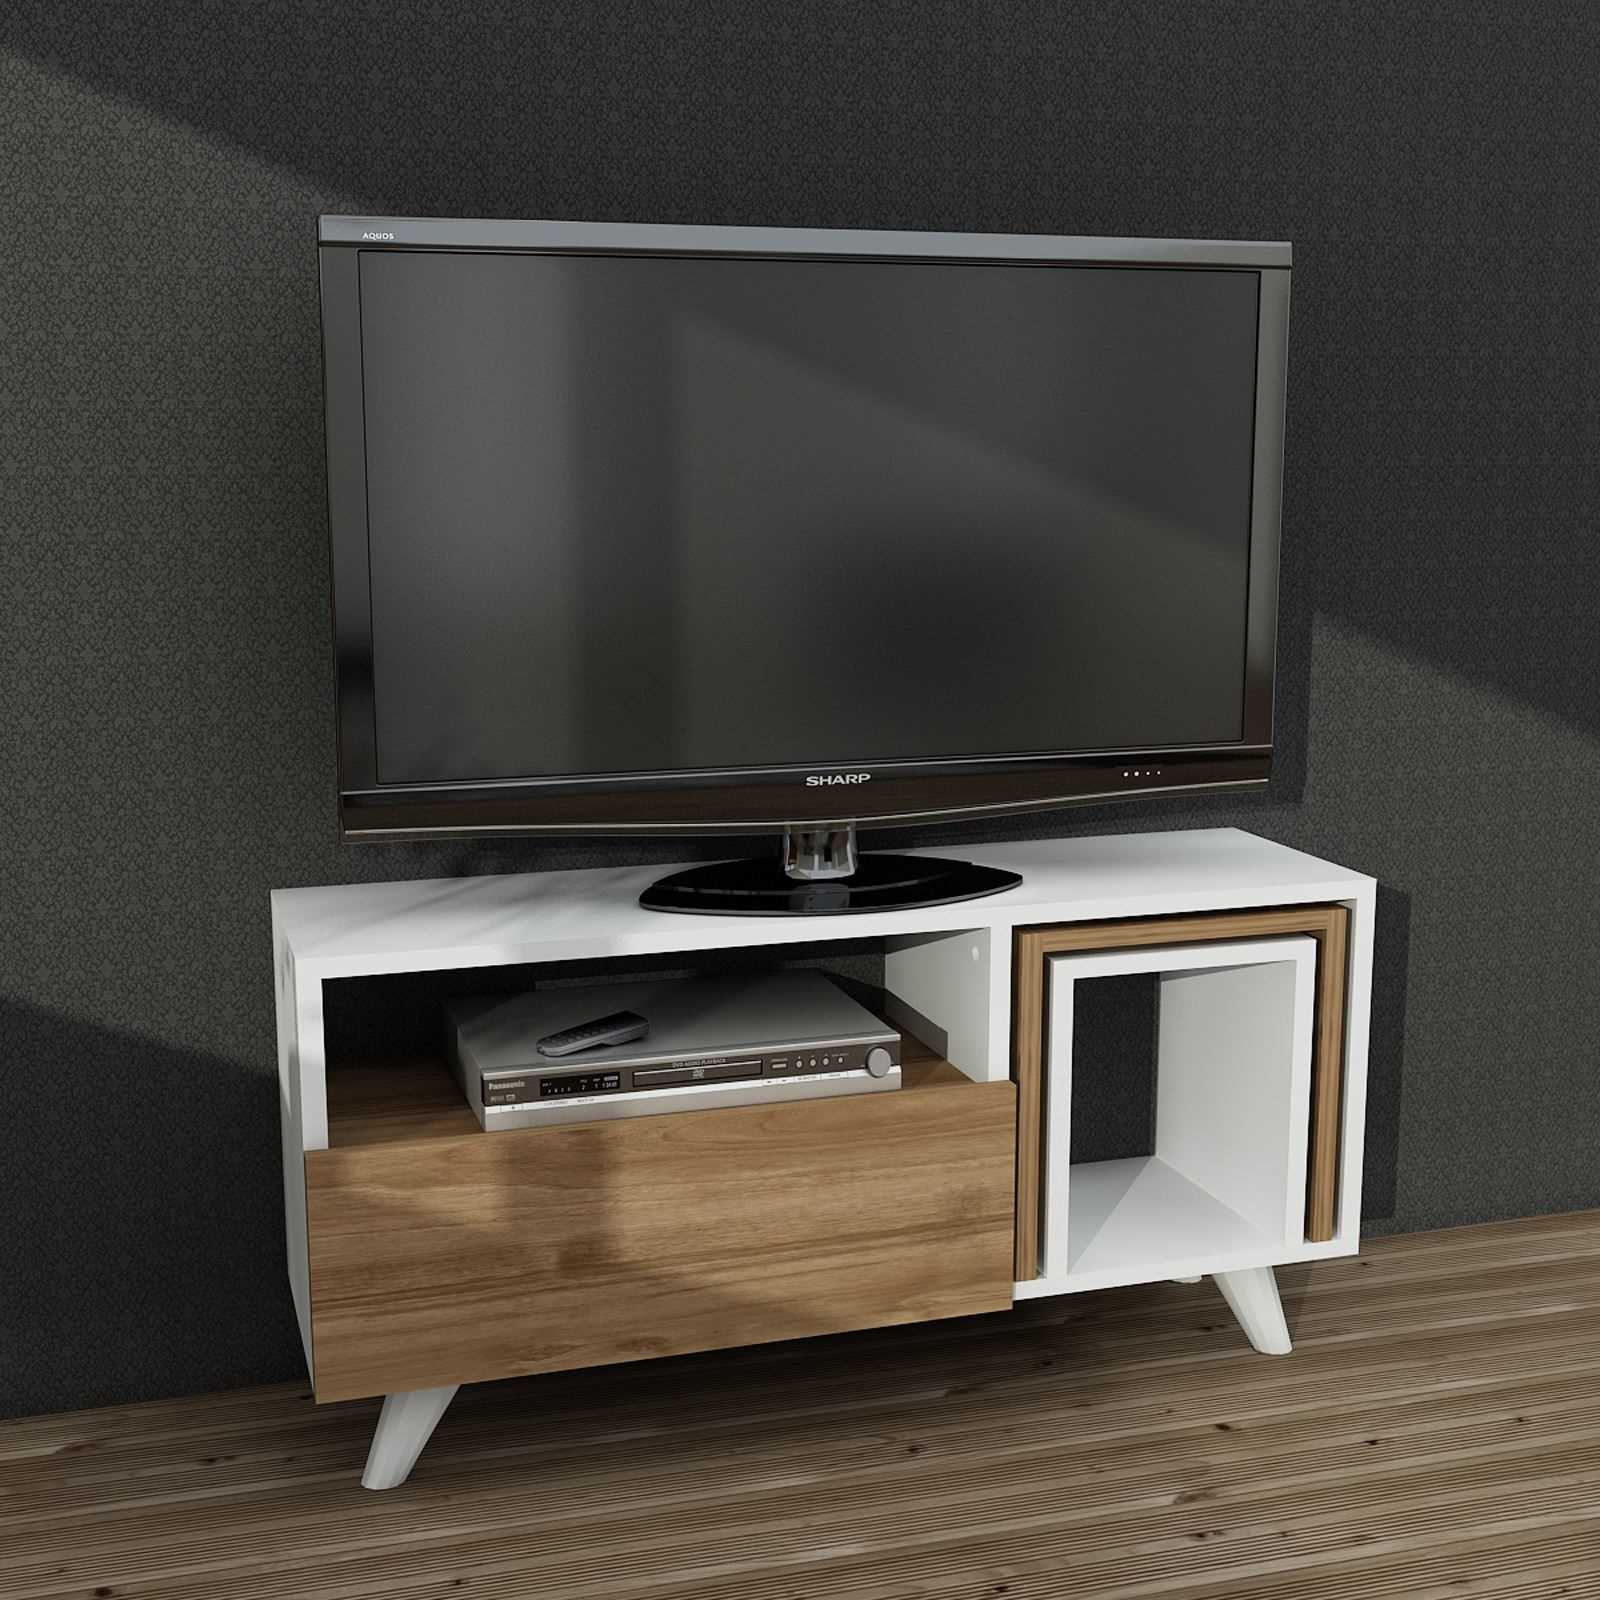 Wooden Art Meuble Wooden Art Meuble Tv Blanc Brandalley